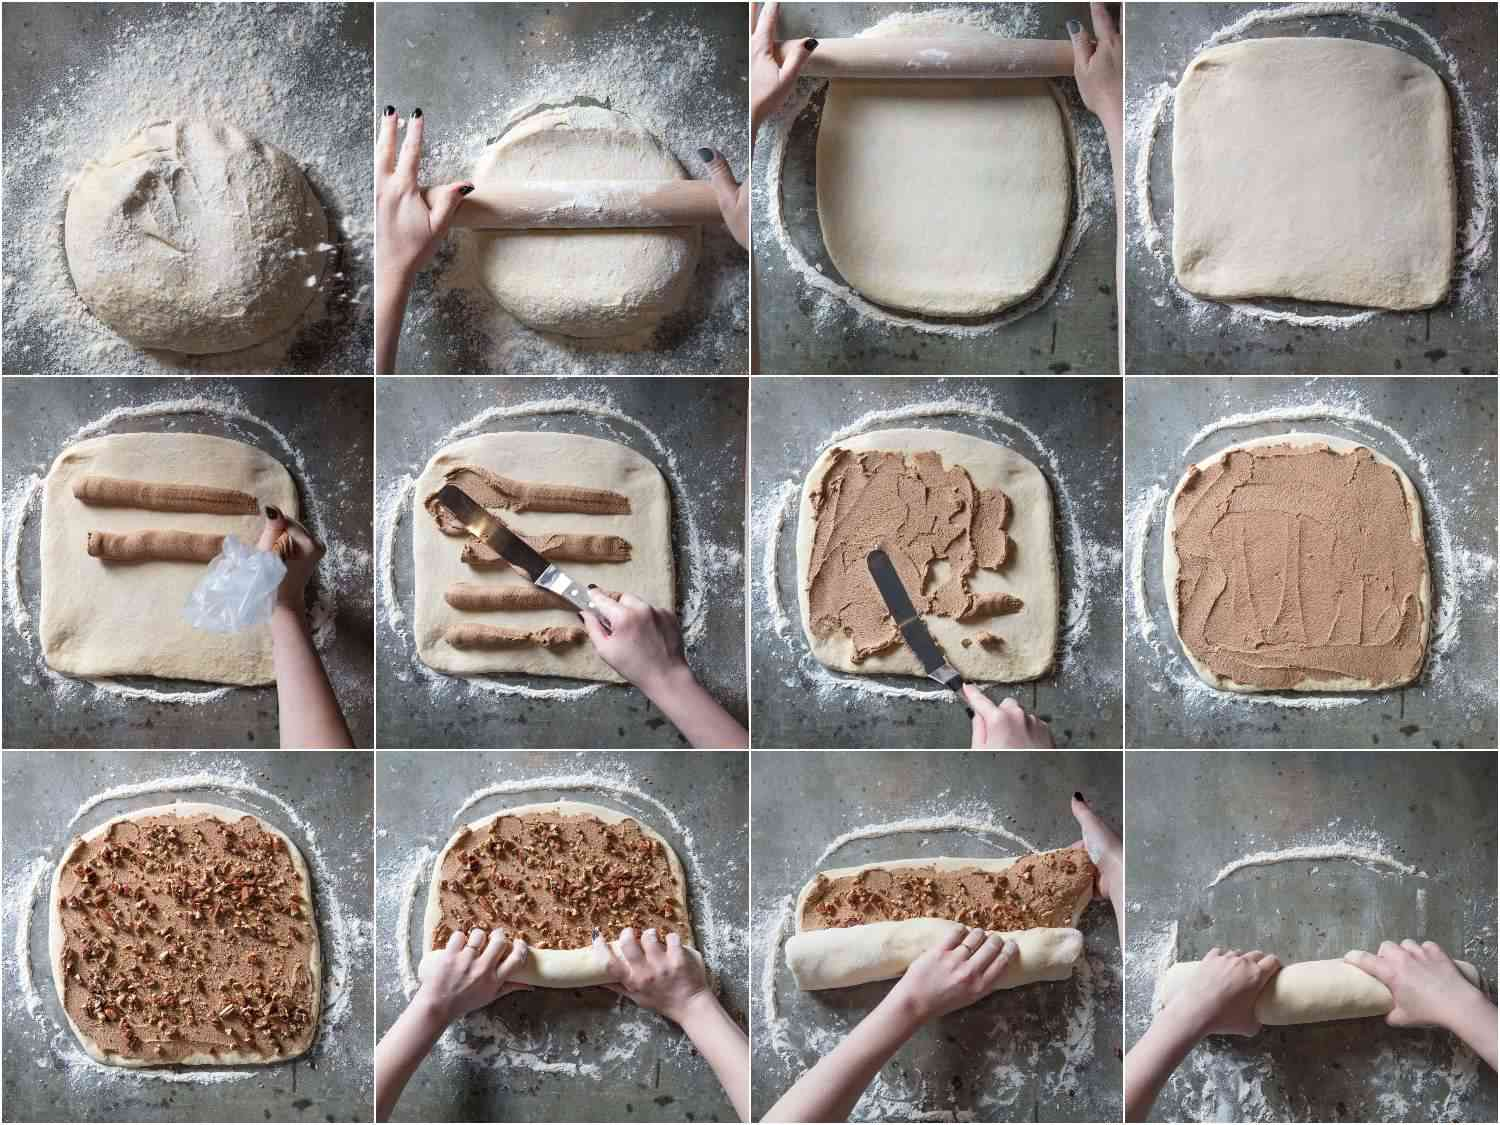 Photo collage showing the process of shaping, filling, and rolling cinnamon rolls.